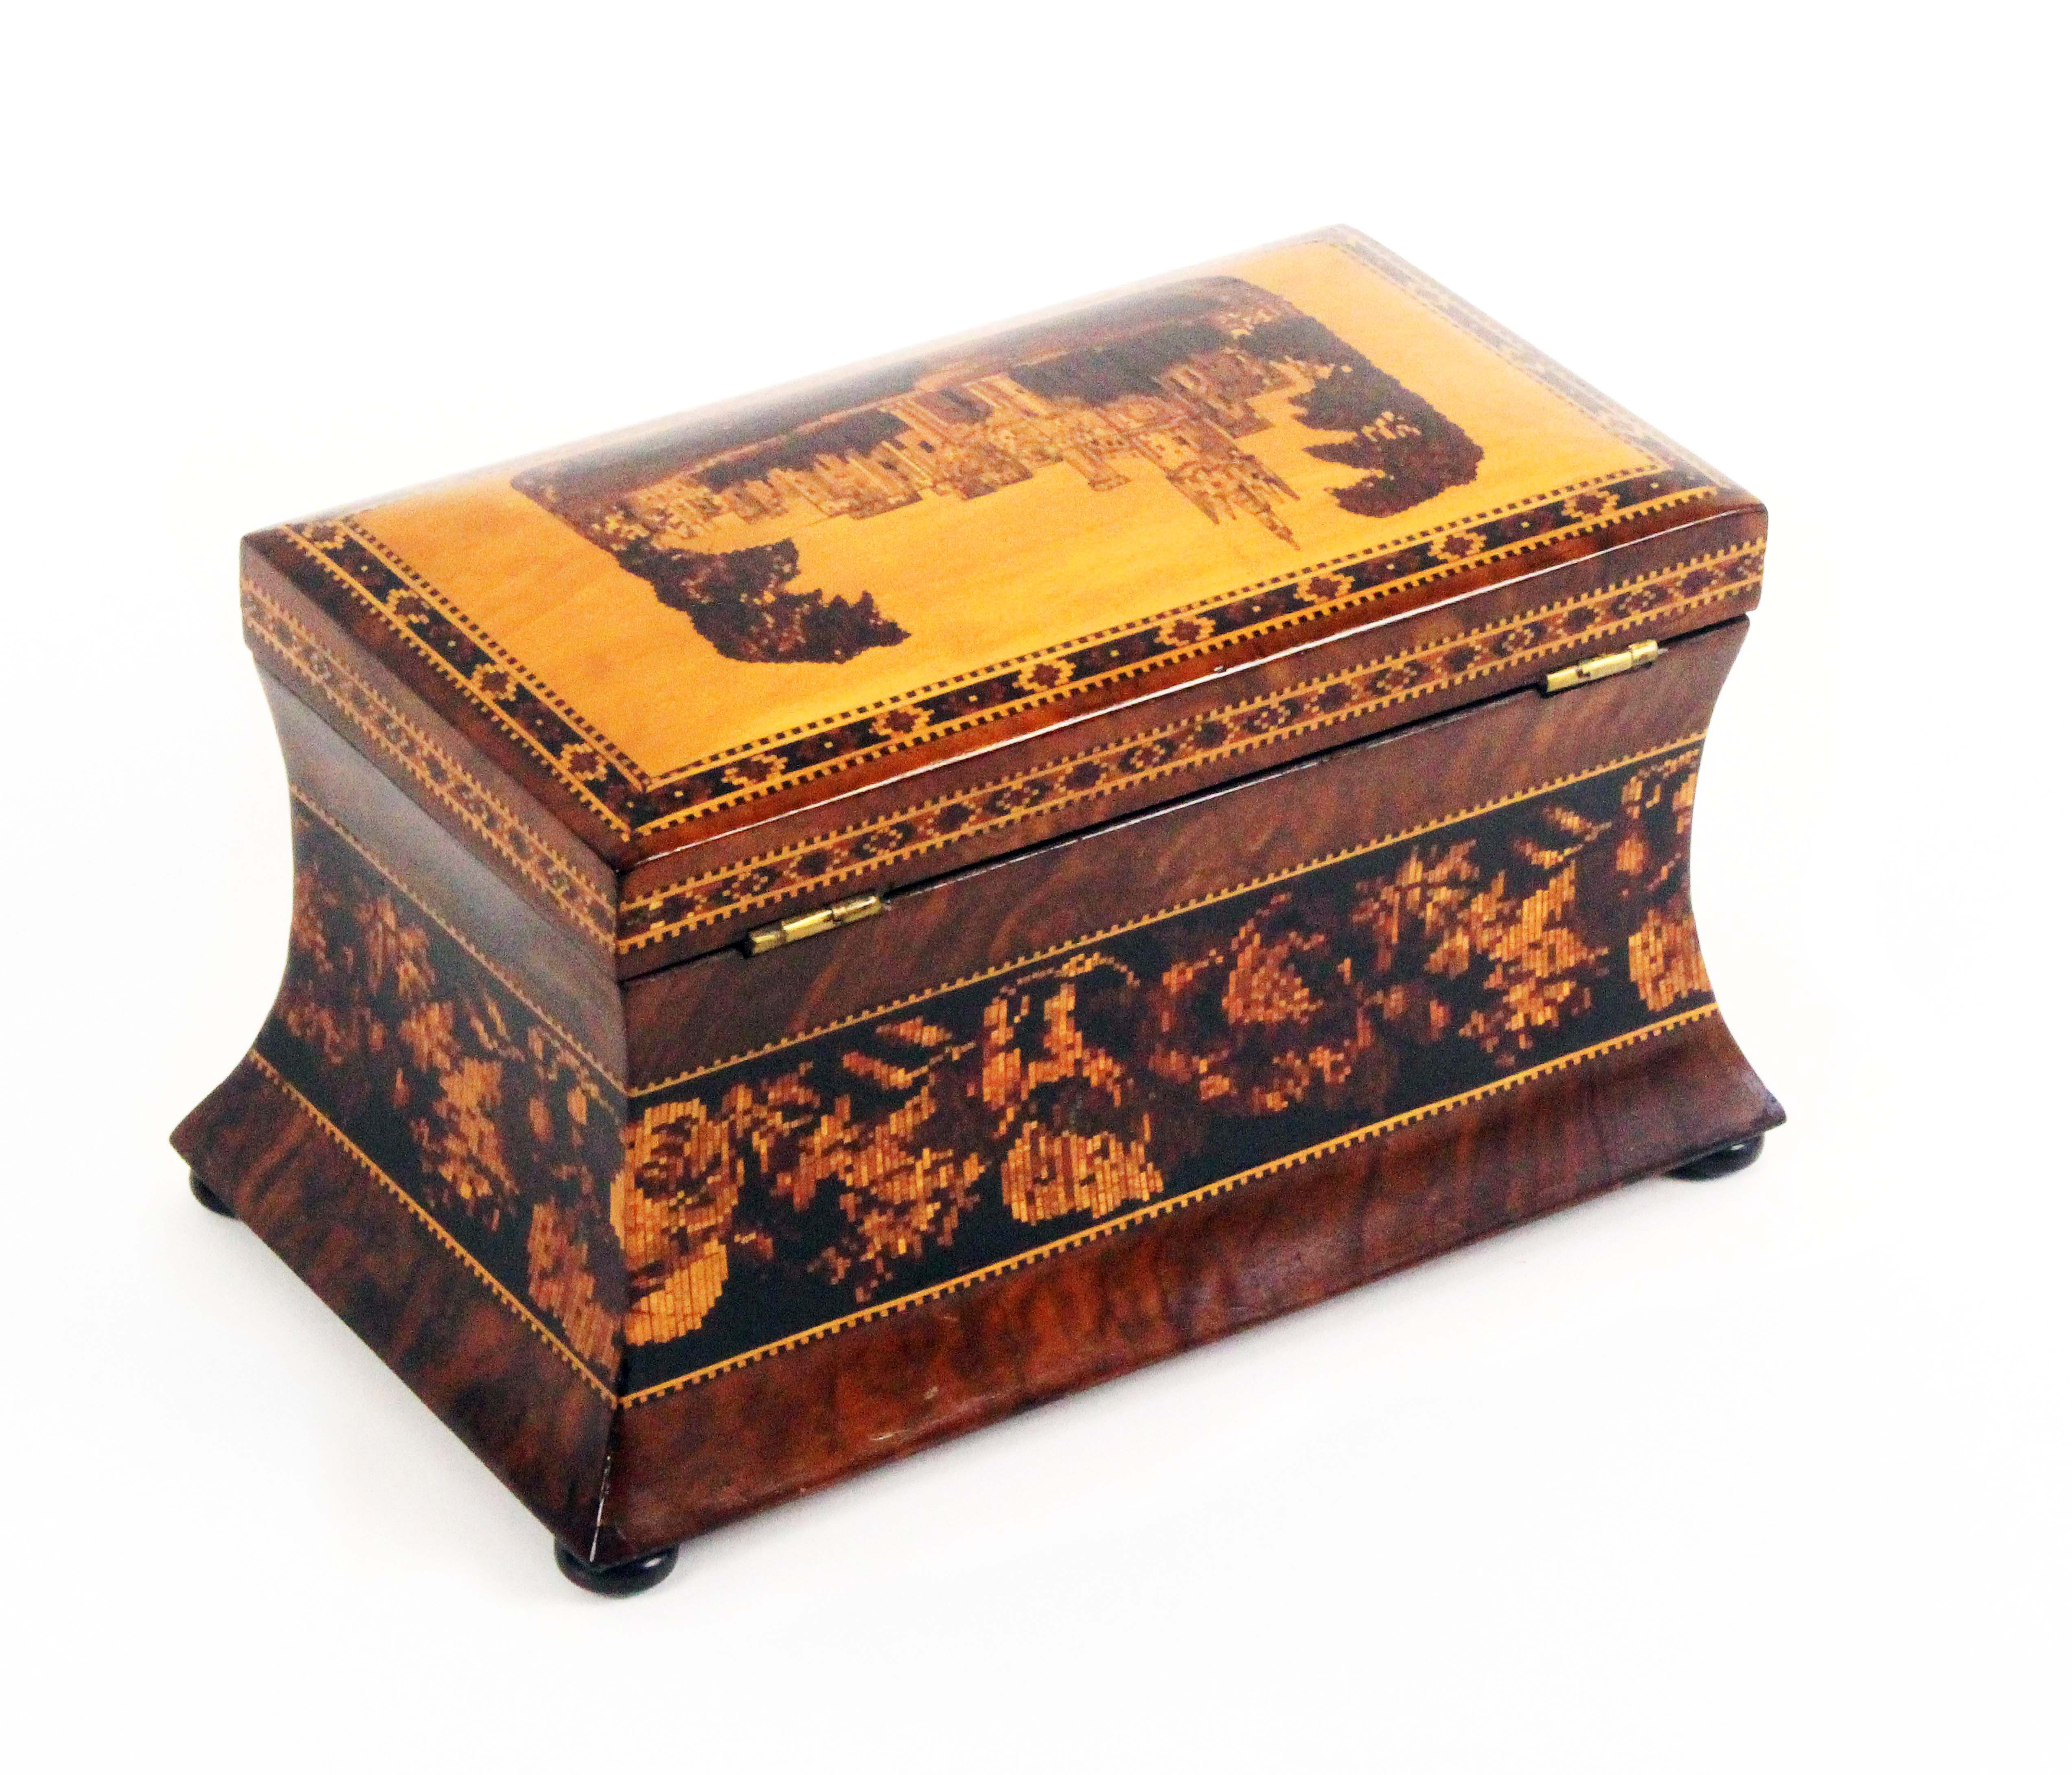 Lot 20 - A good walnut Tunbridge ware tea caddy, the convex sides with a broad band of floral mosaic with a